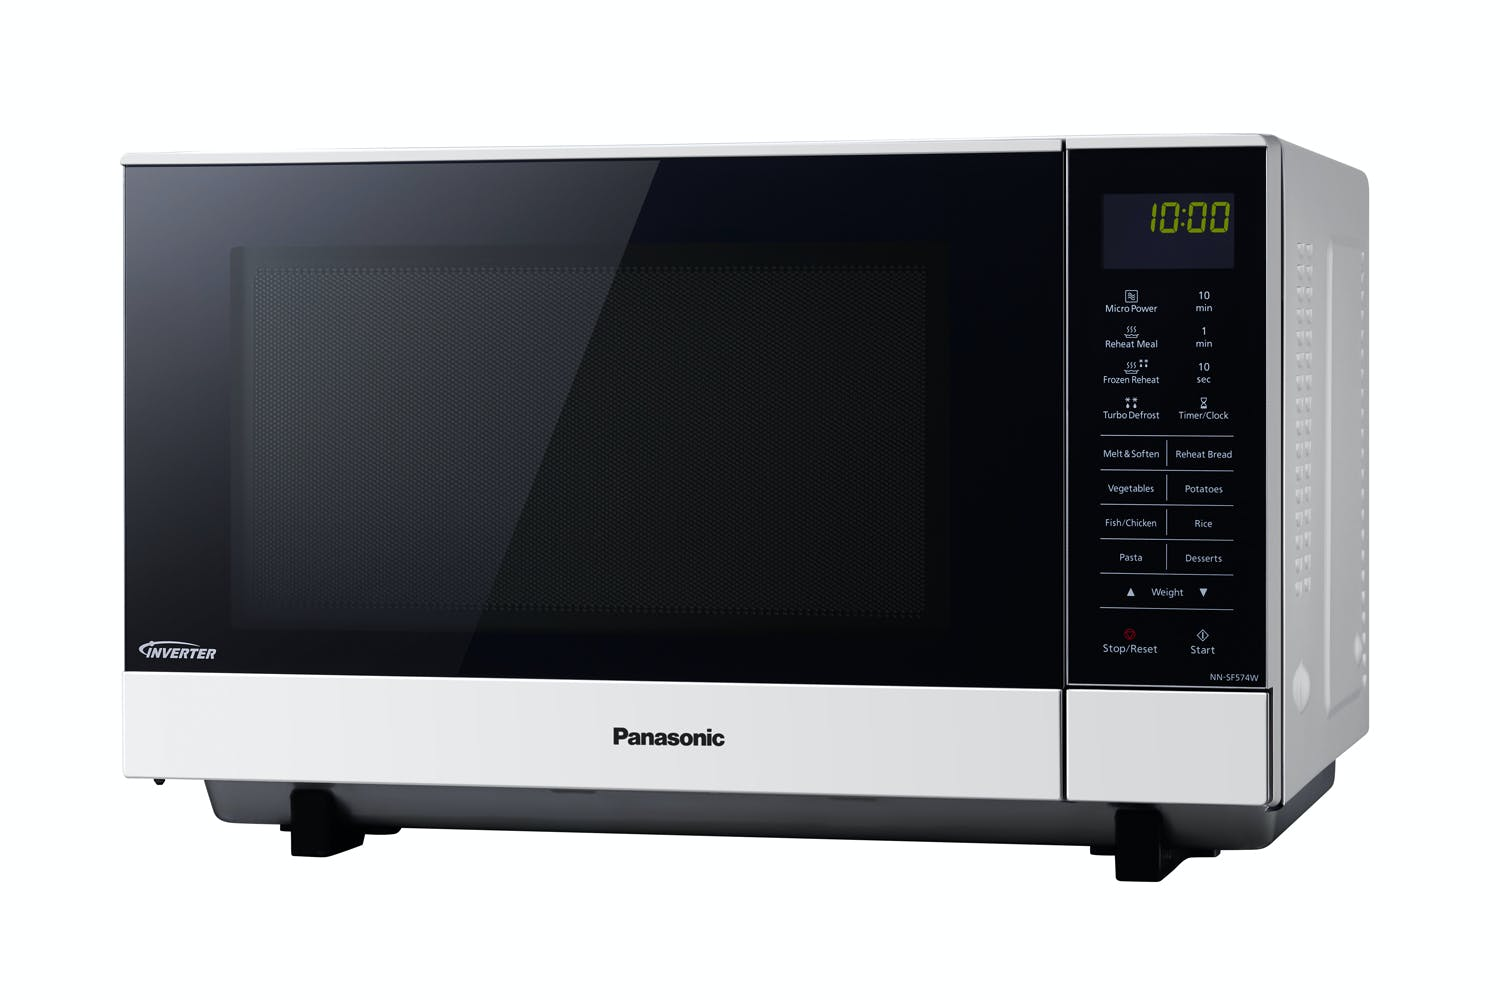 Panasonic 27l Flatbed Inverter Microwave Oven White